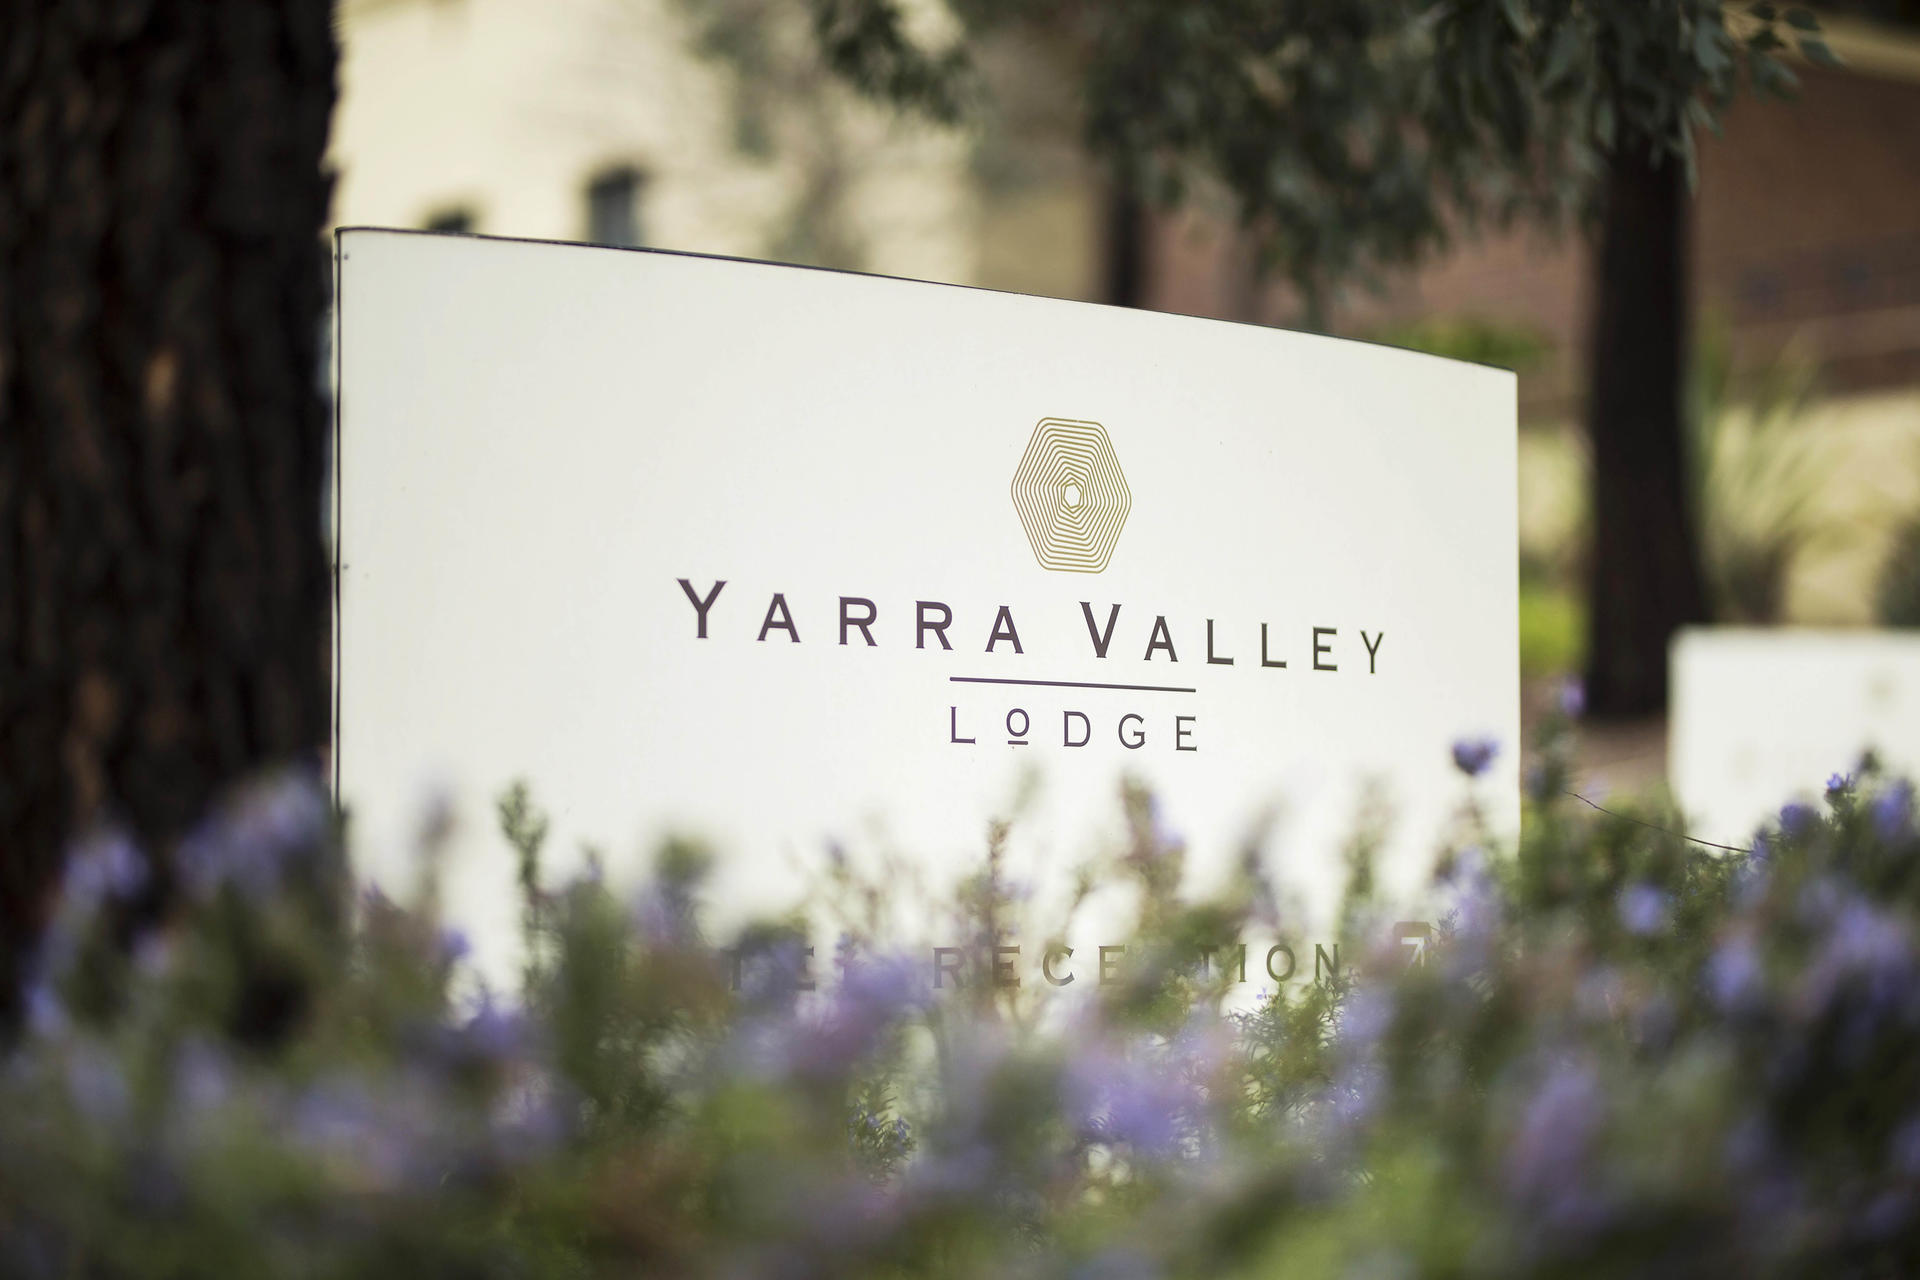 Yarra Valley Lodge - Entrance Sign